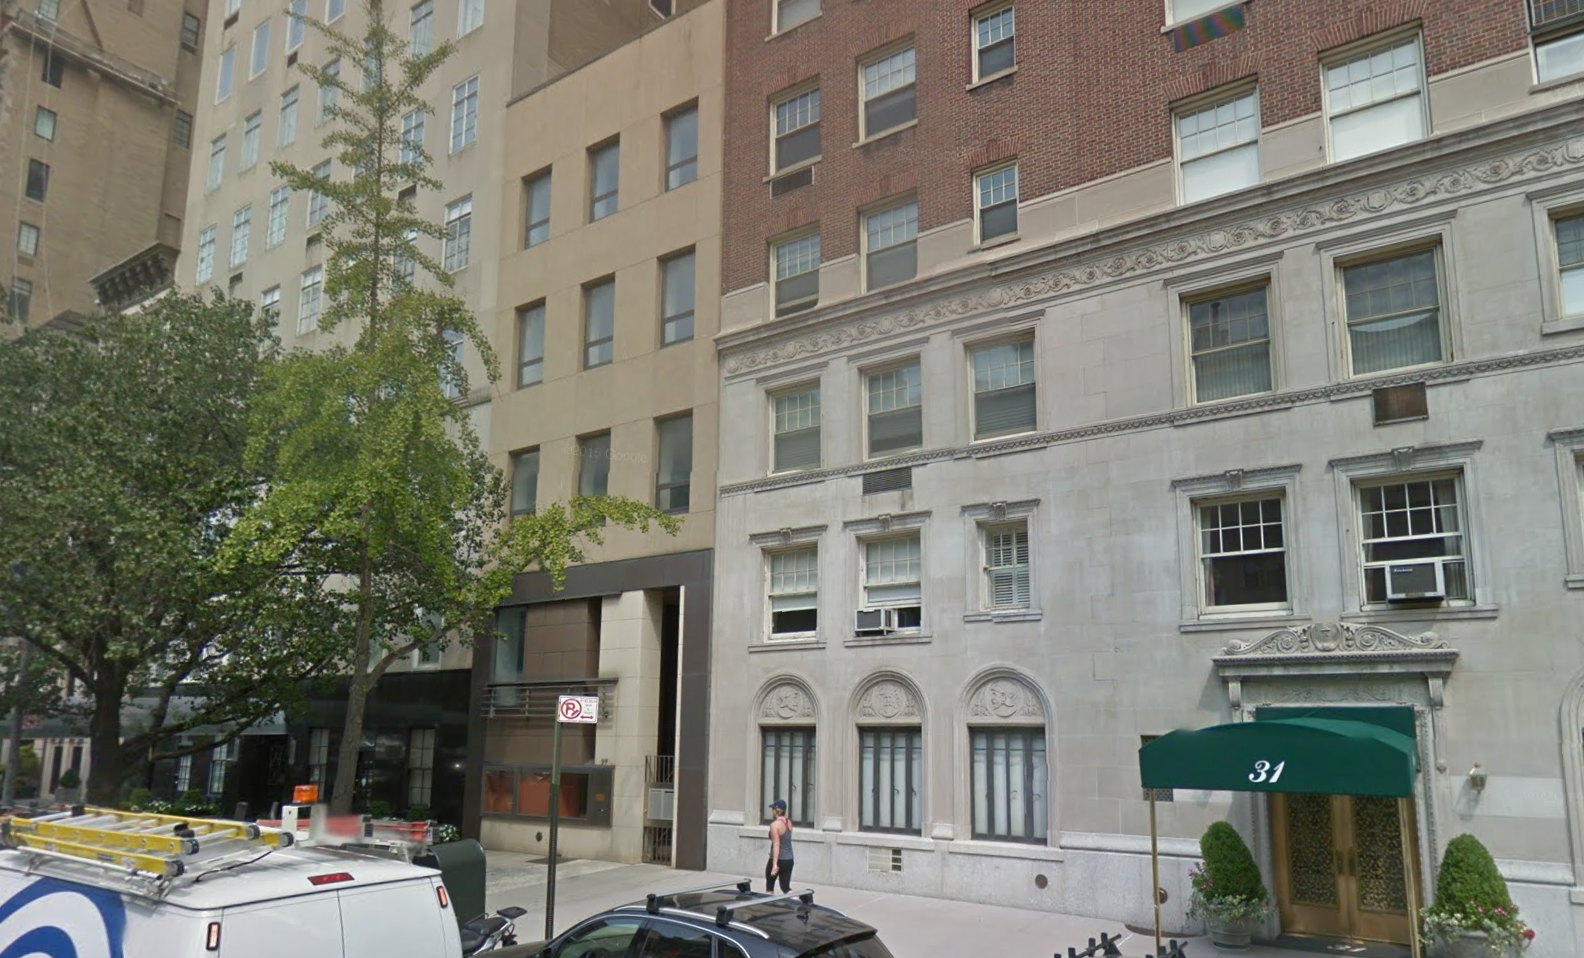 27 East 79th Street, image via Google Maps